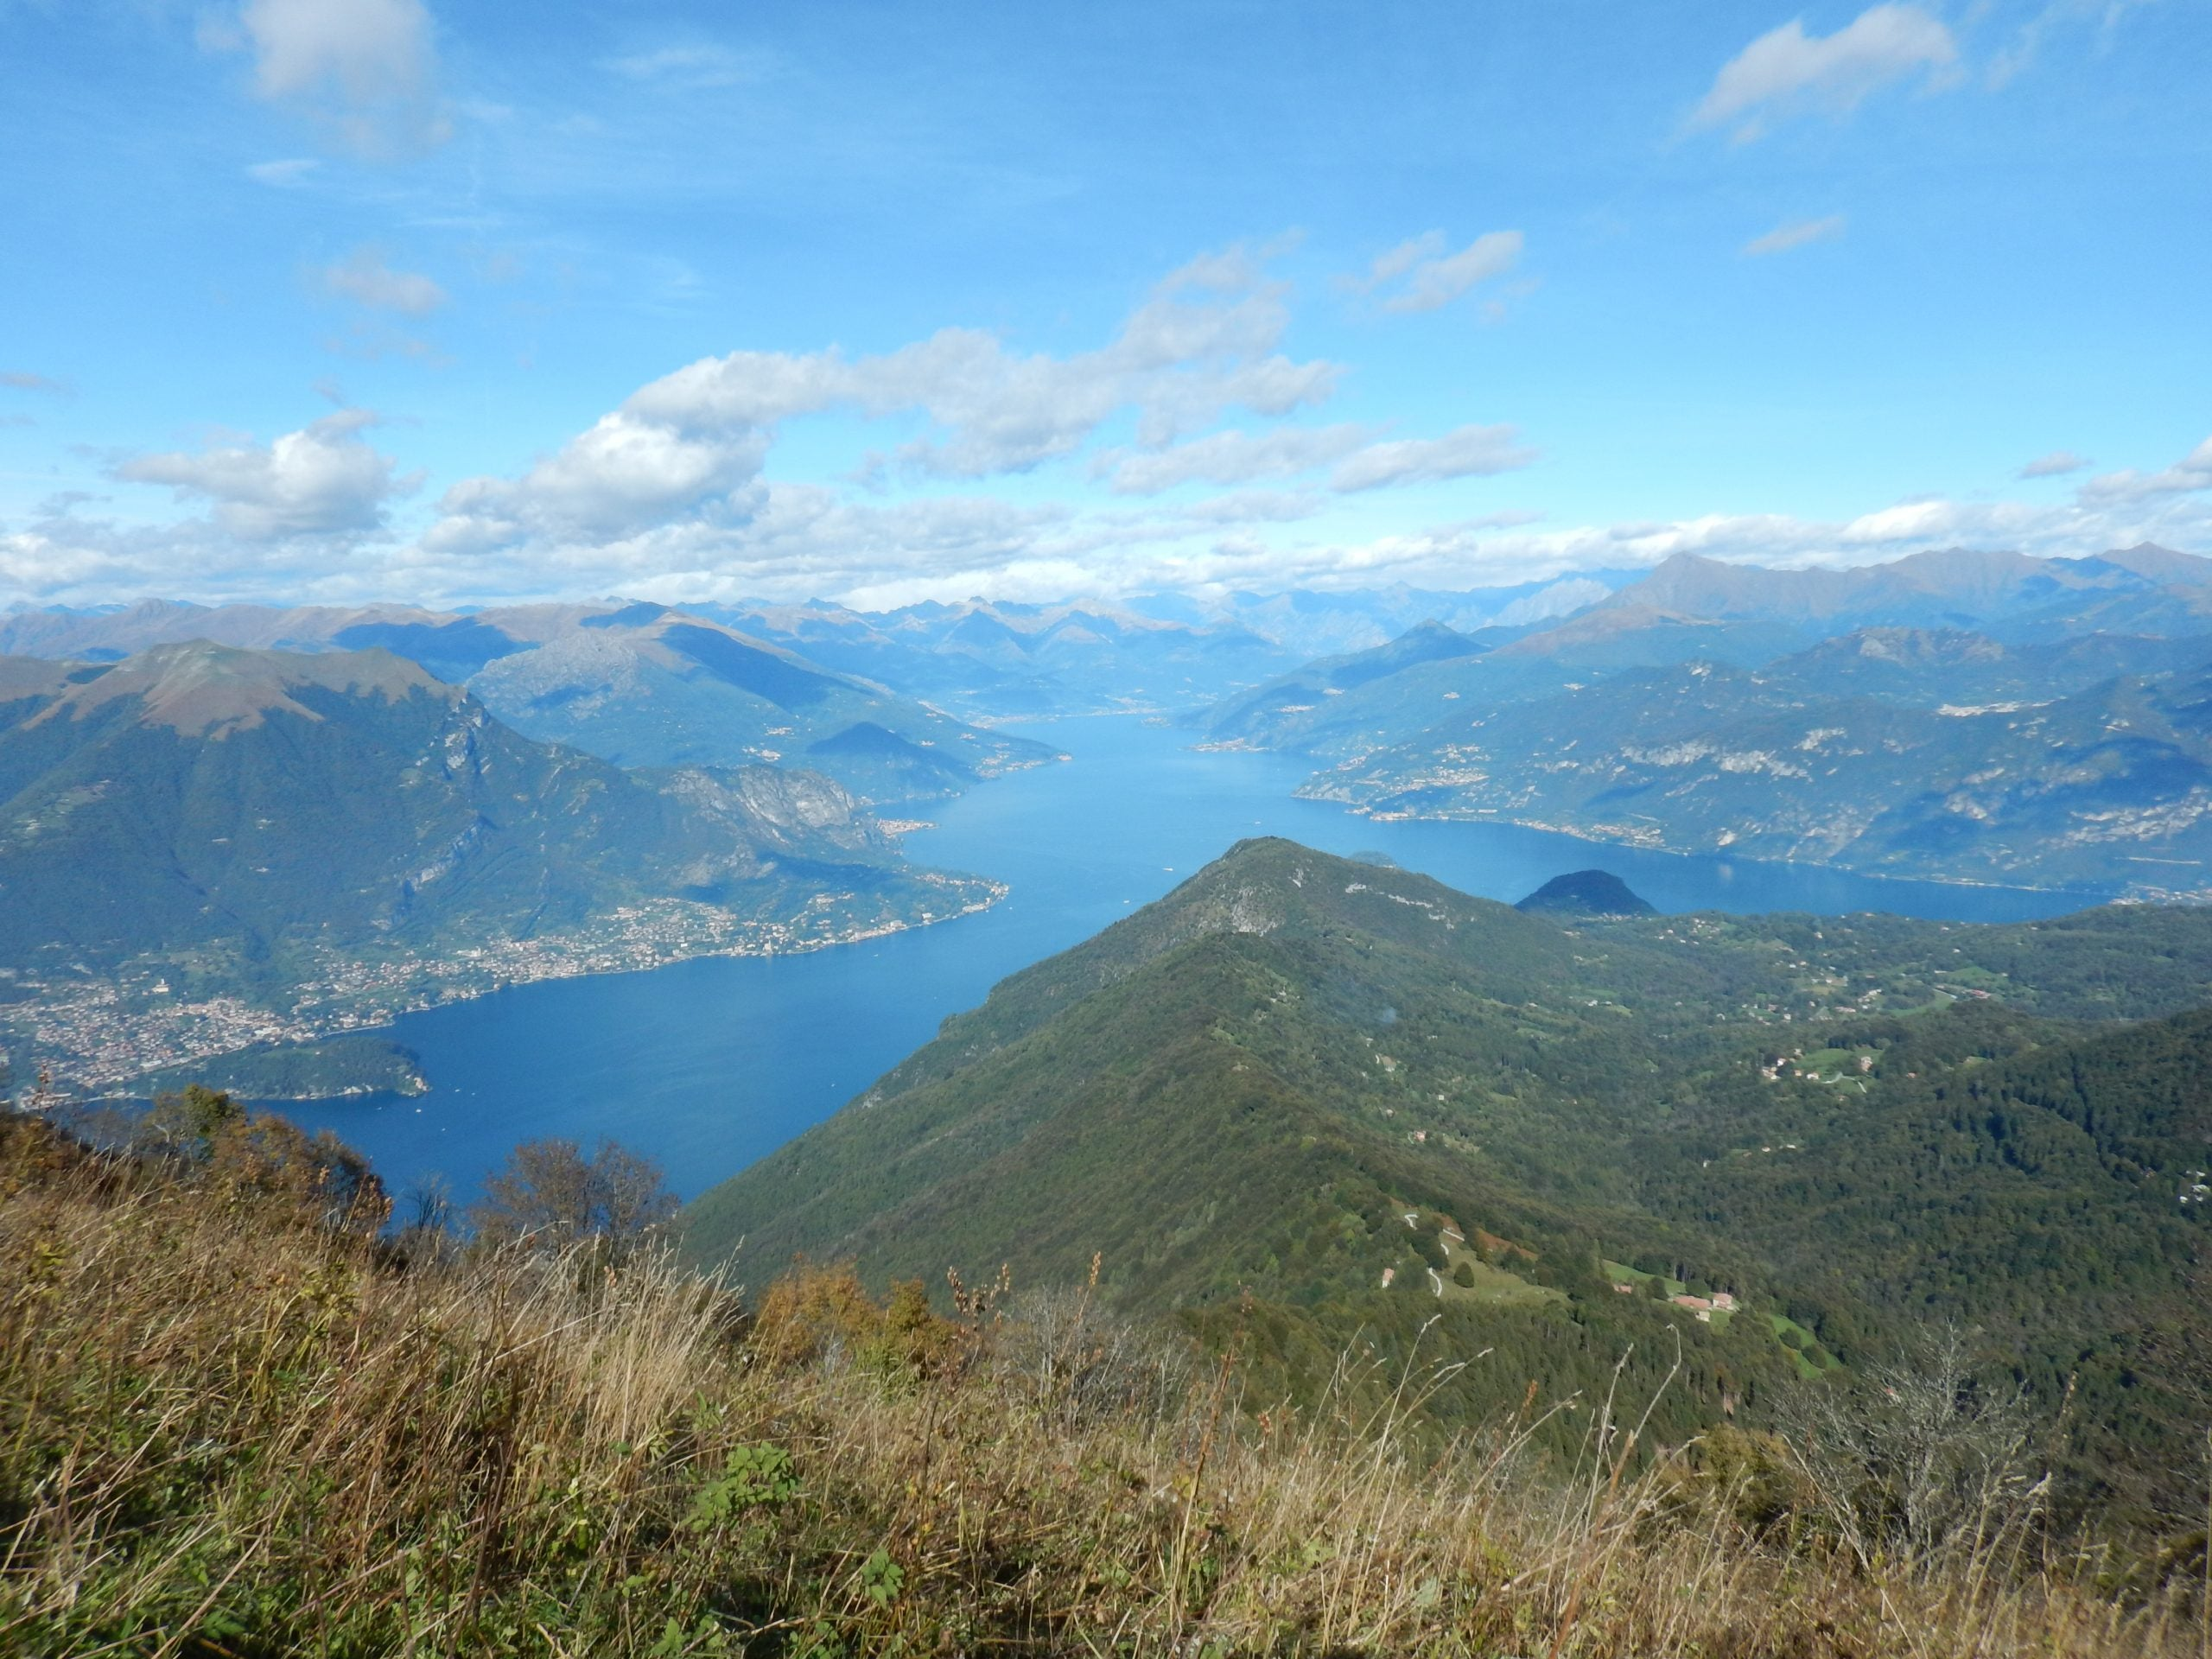 Ride Review: Biking Italy's Lake Como By E-Mountain Bike - View From the Top 2